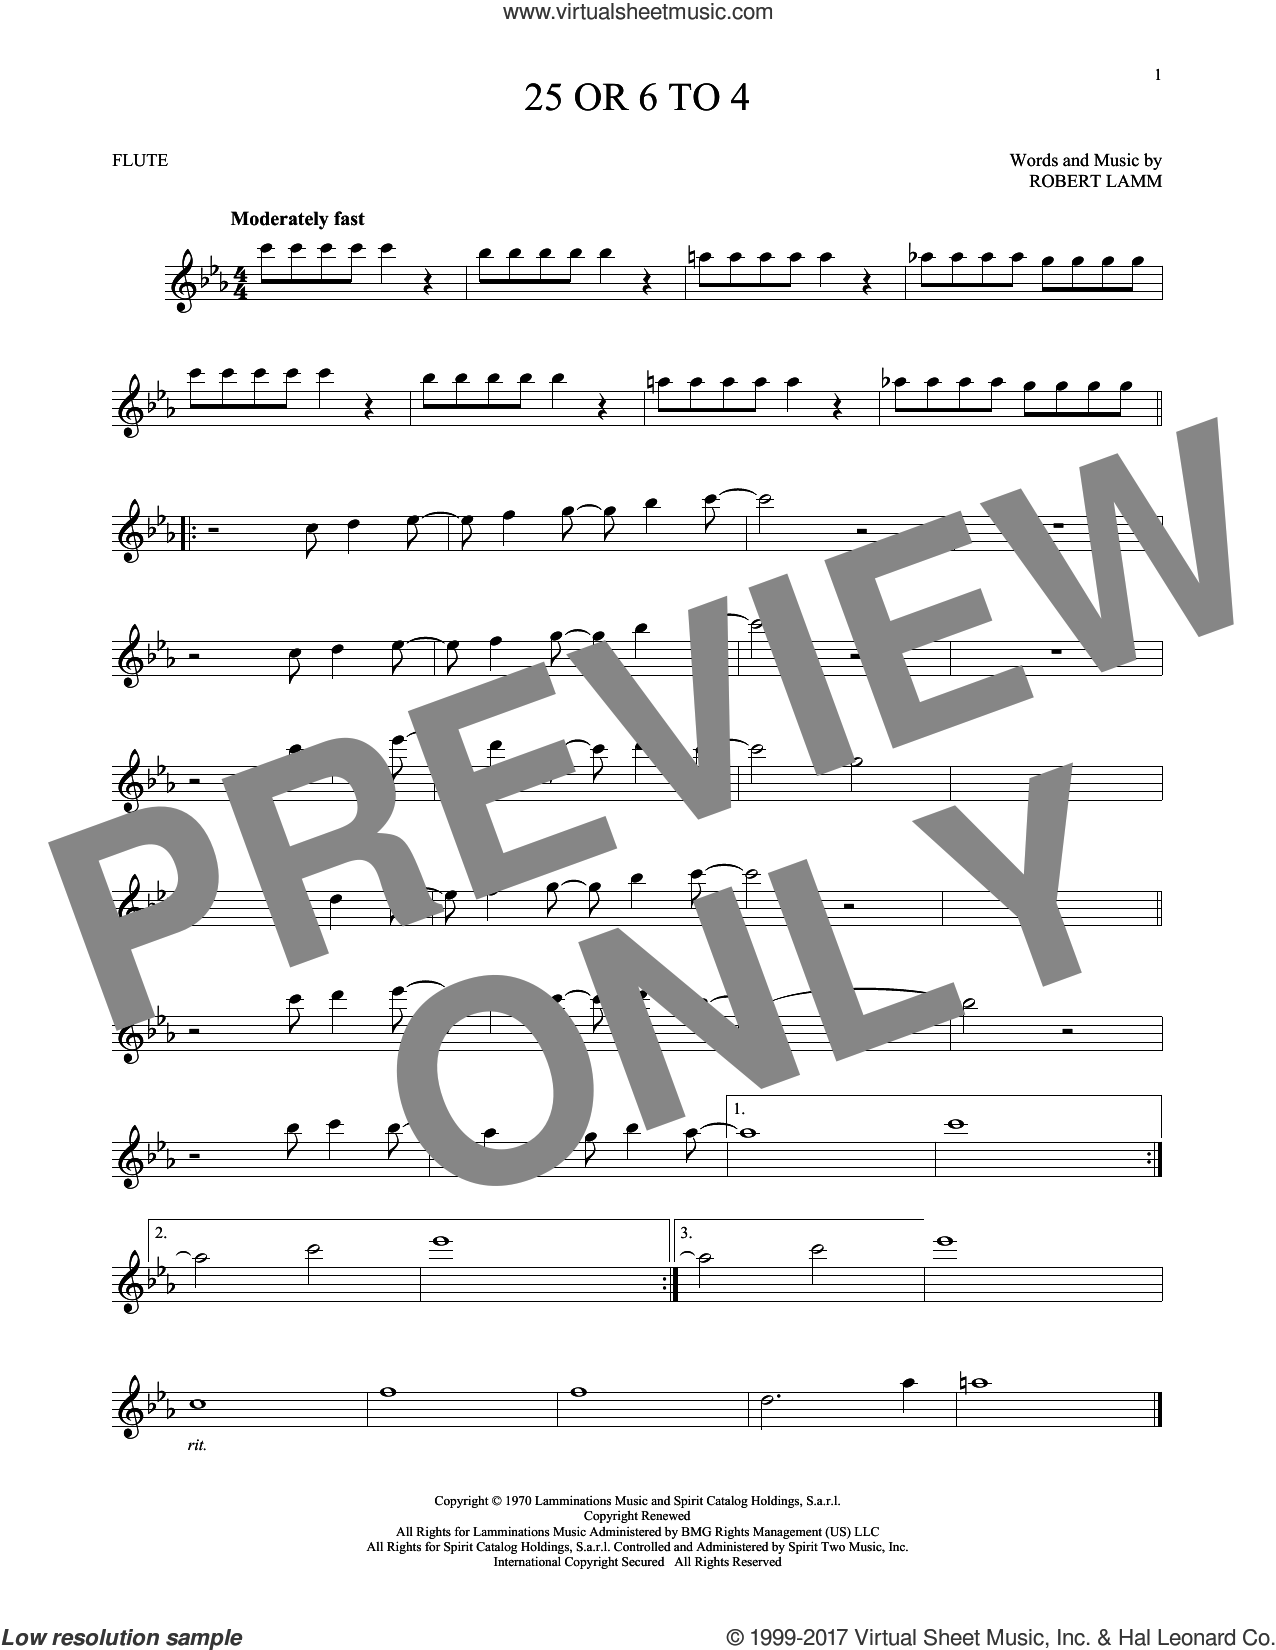 25 Or 6 To 4 sheet music for flute solo by Chicago and Robert Lamm, intermediate skill level